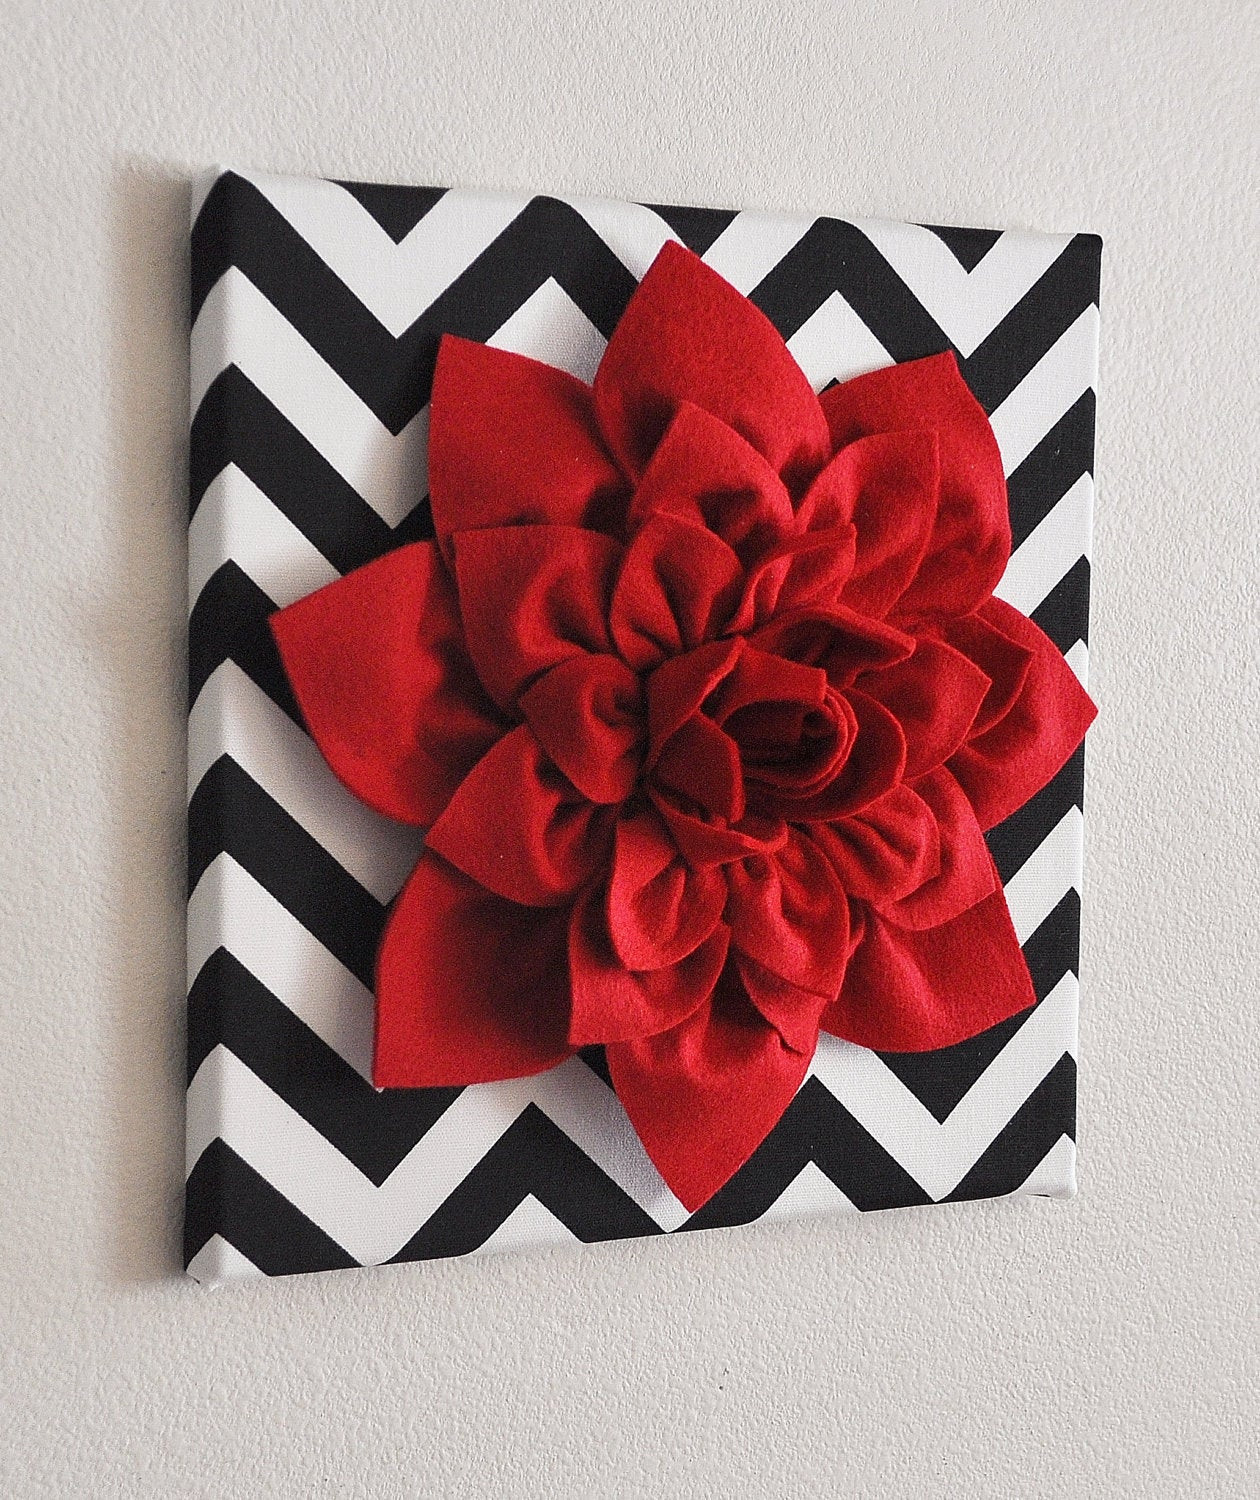 Best ideas about Red Wall Art . Save or Pin Red Wall Flower Red Dahlia on Black and White Chevron by Now.